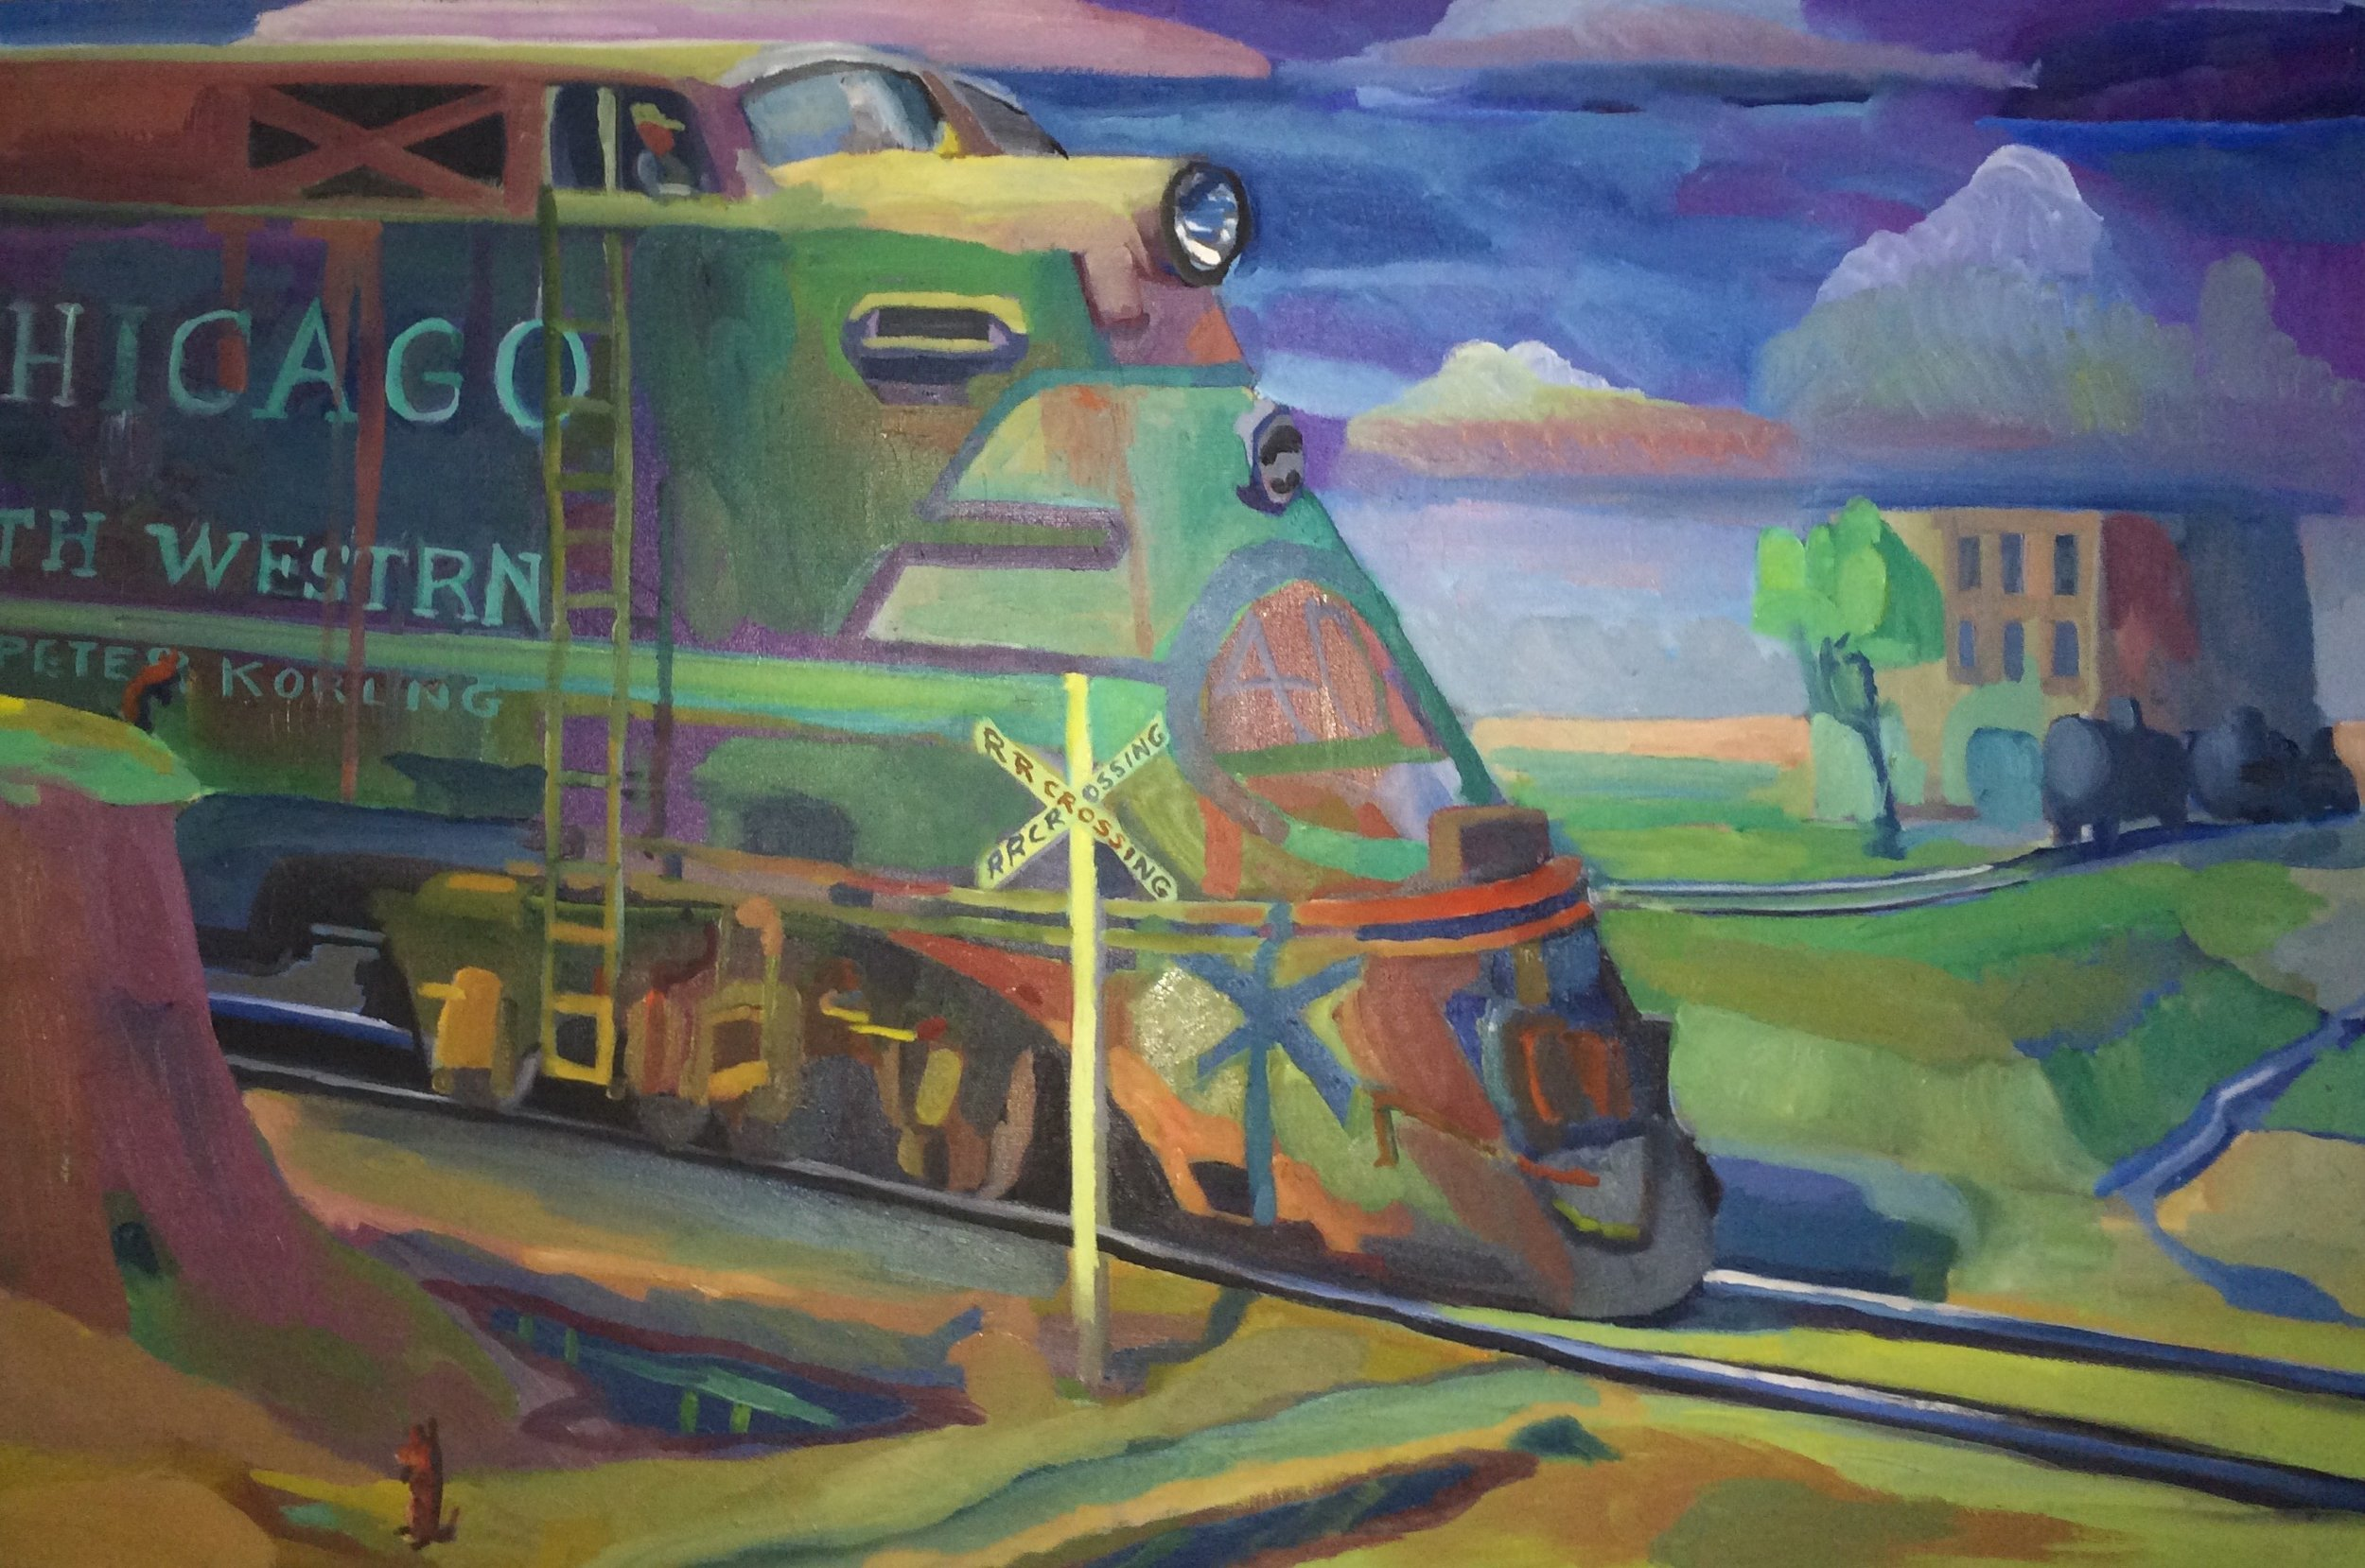 Chicago North Western Engine  24x36 oil on canvas  Sold